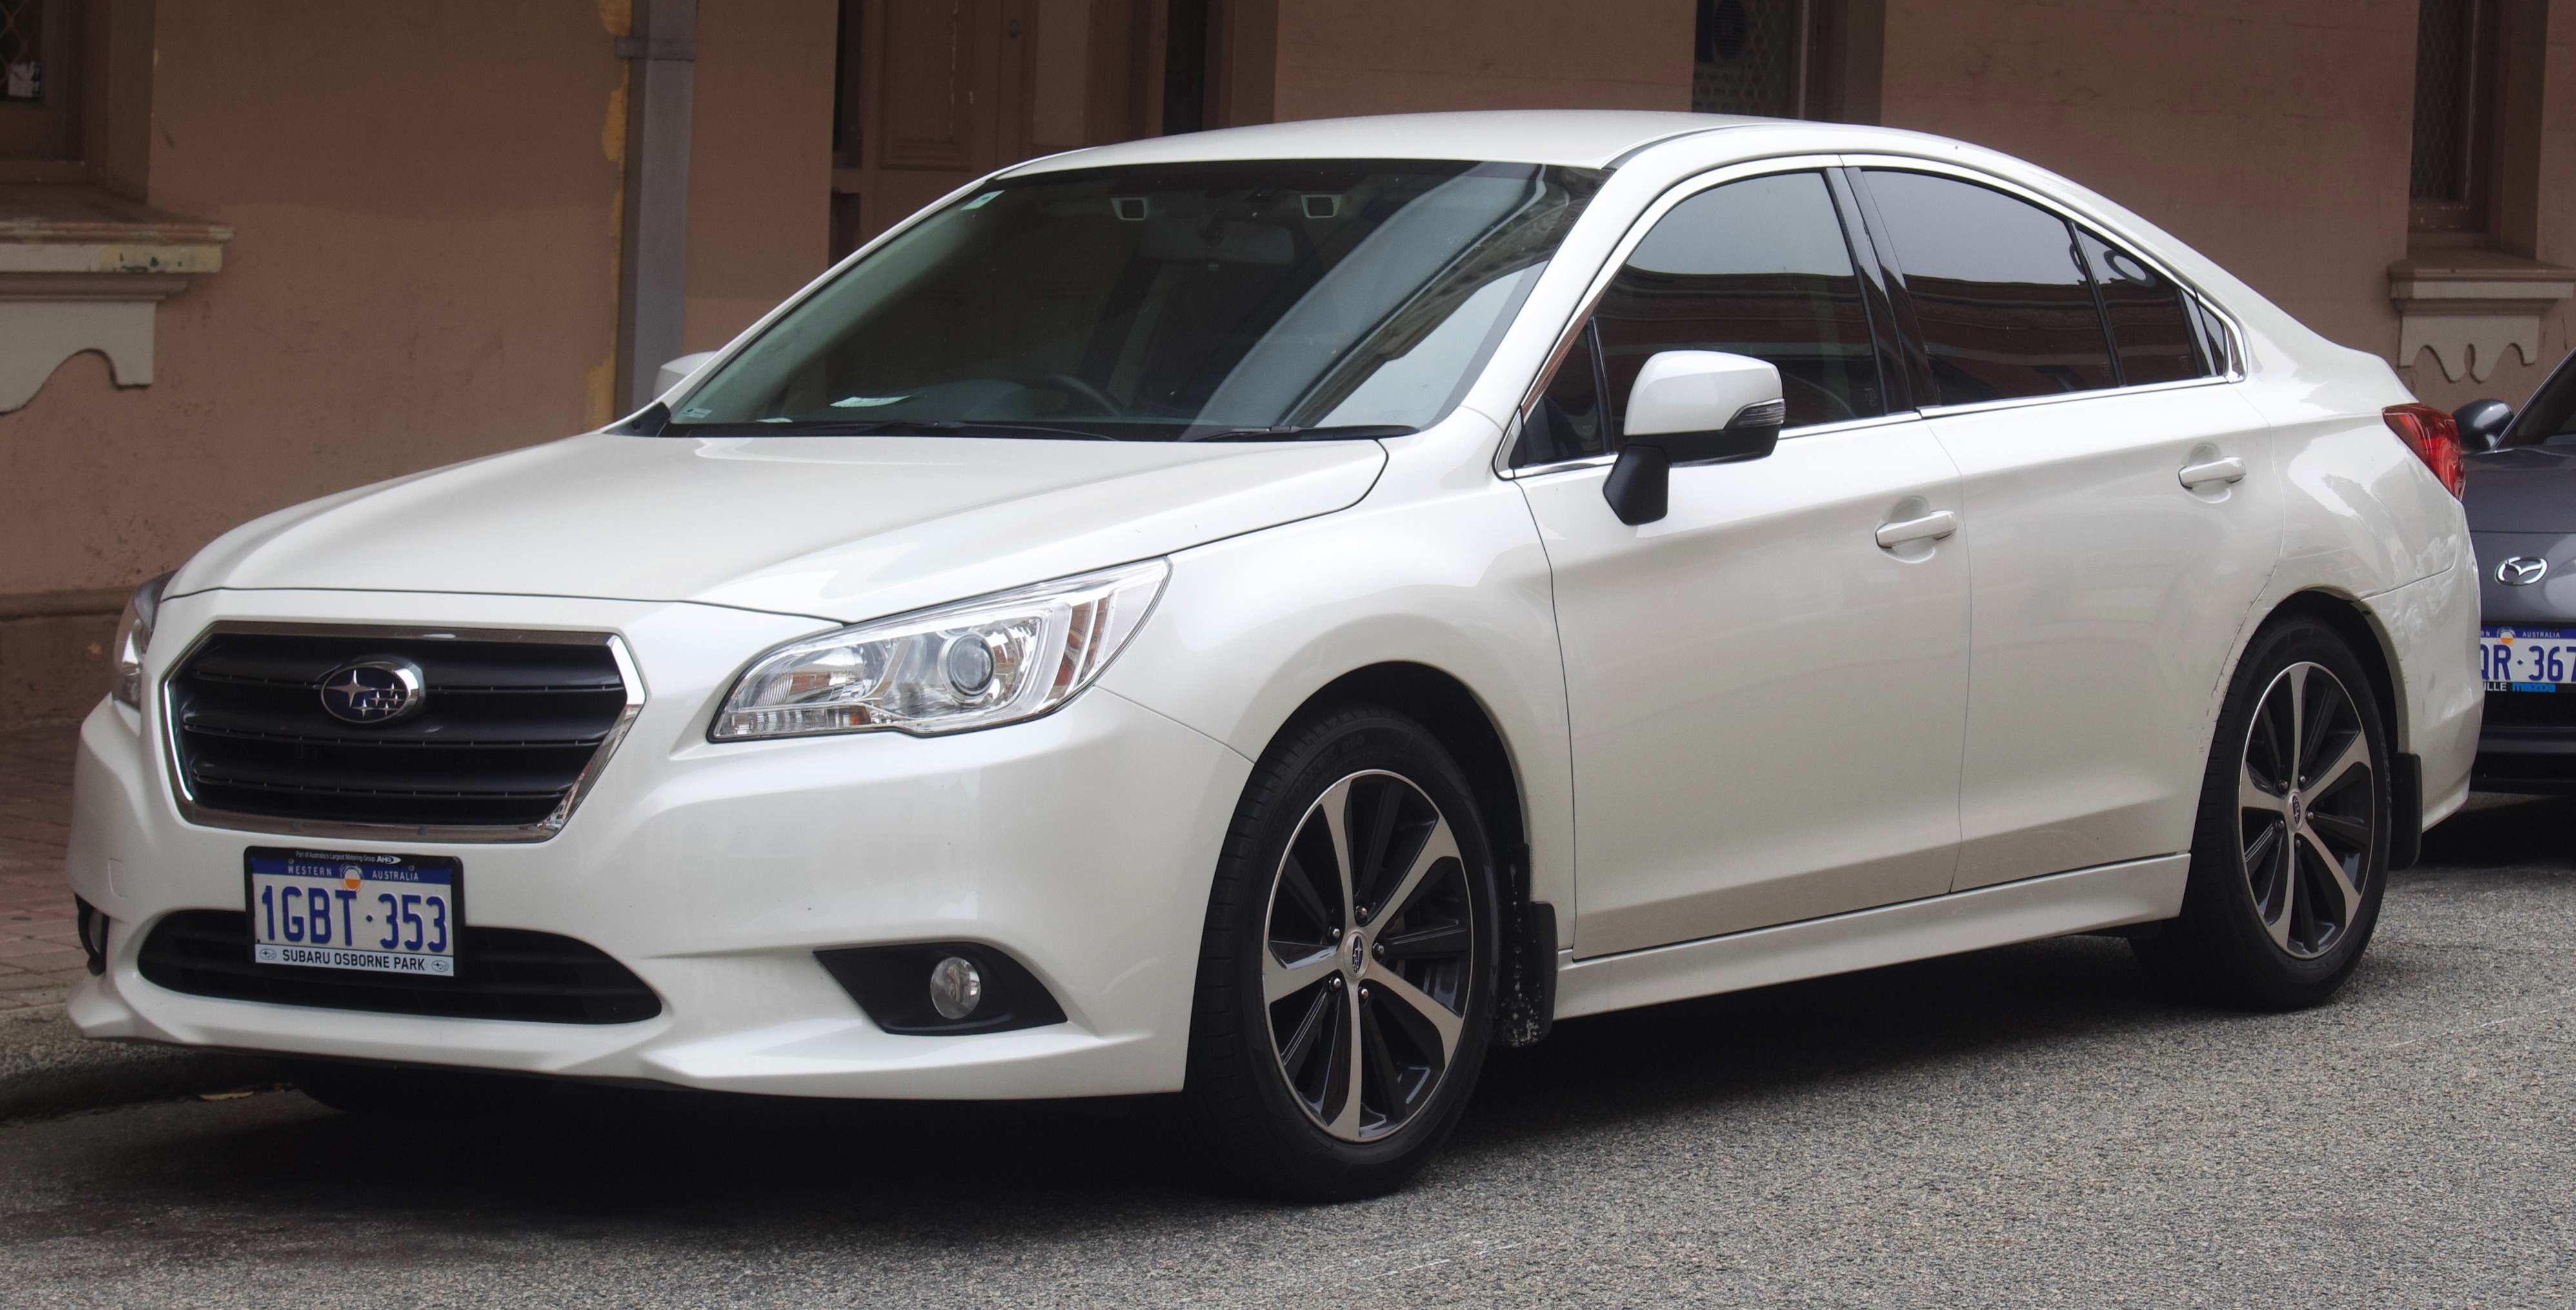 32 The Best 2020 Subaru Legacy Ground Clearance Price